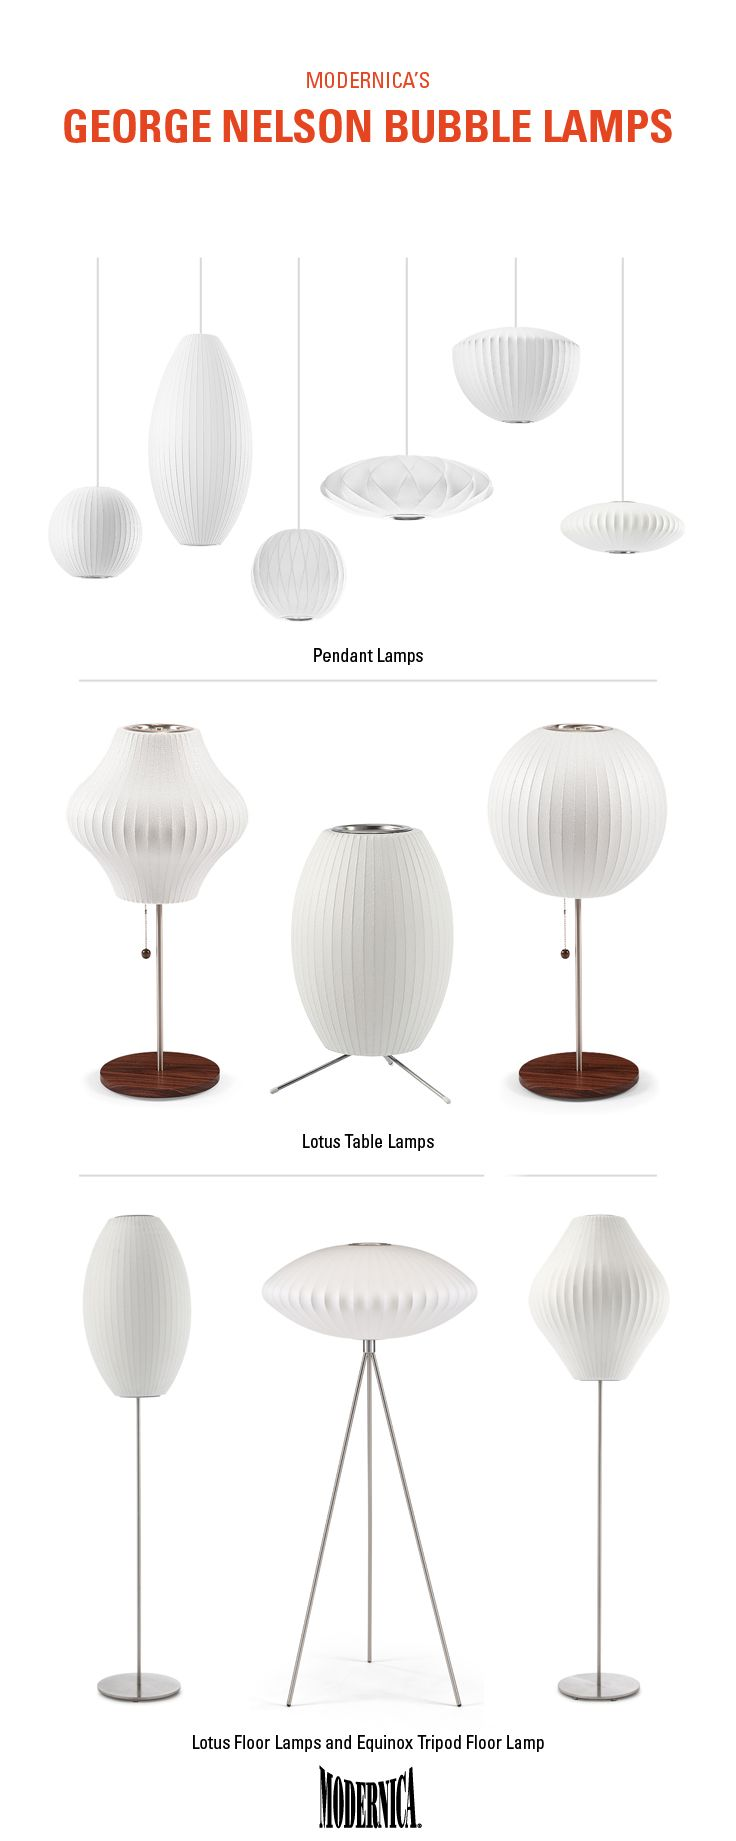 The George Nelson Bubble Lamp Collection | Pendants, table lamps, and floor lamps available in different shapes and sizes to fit your space.